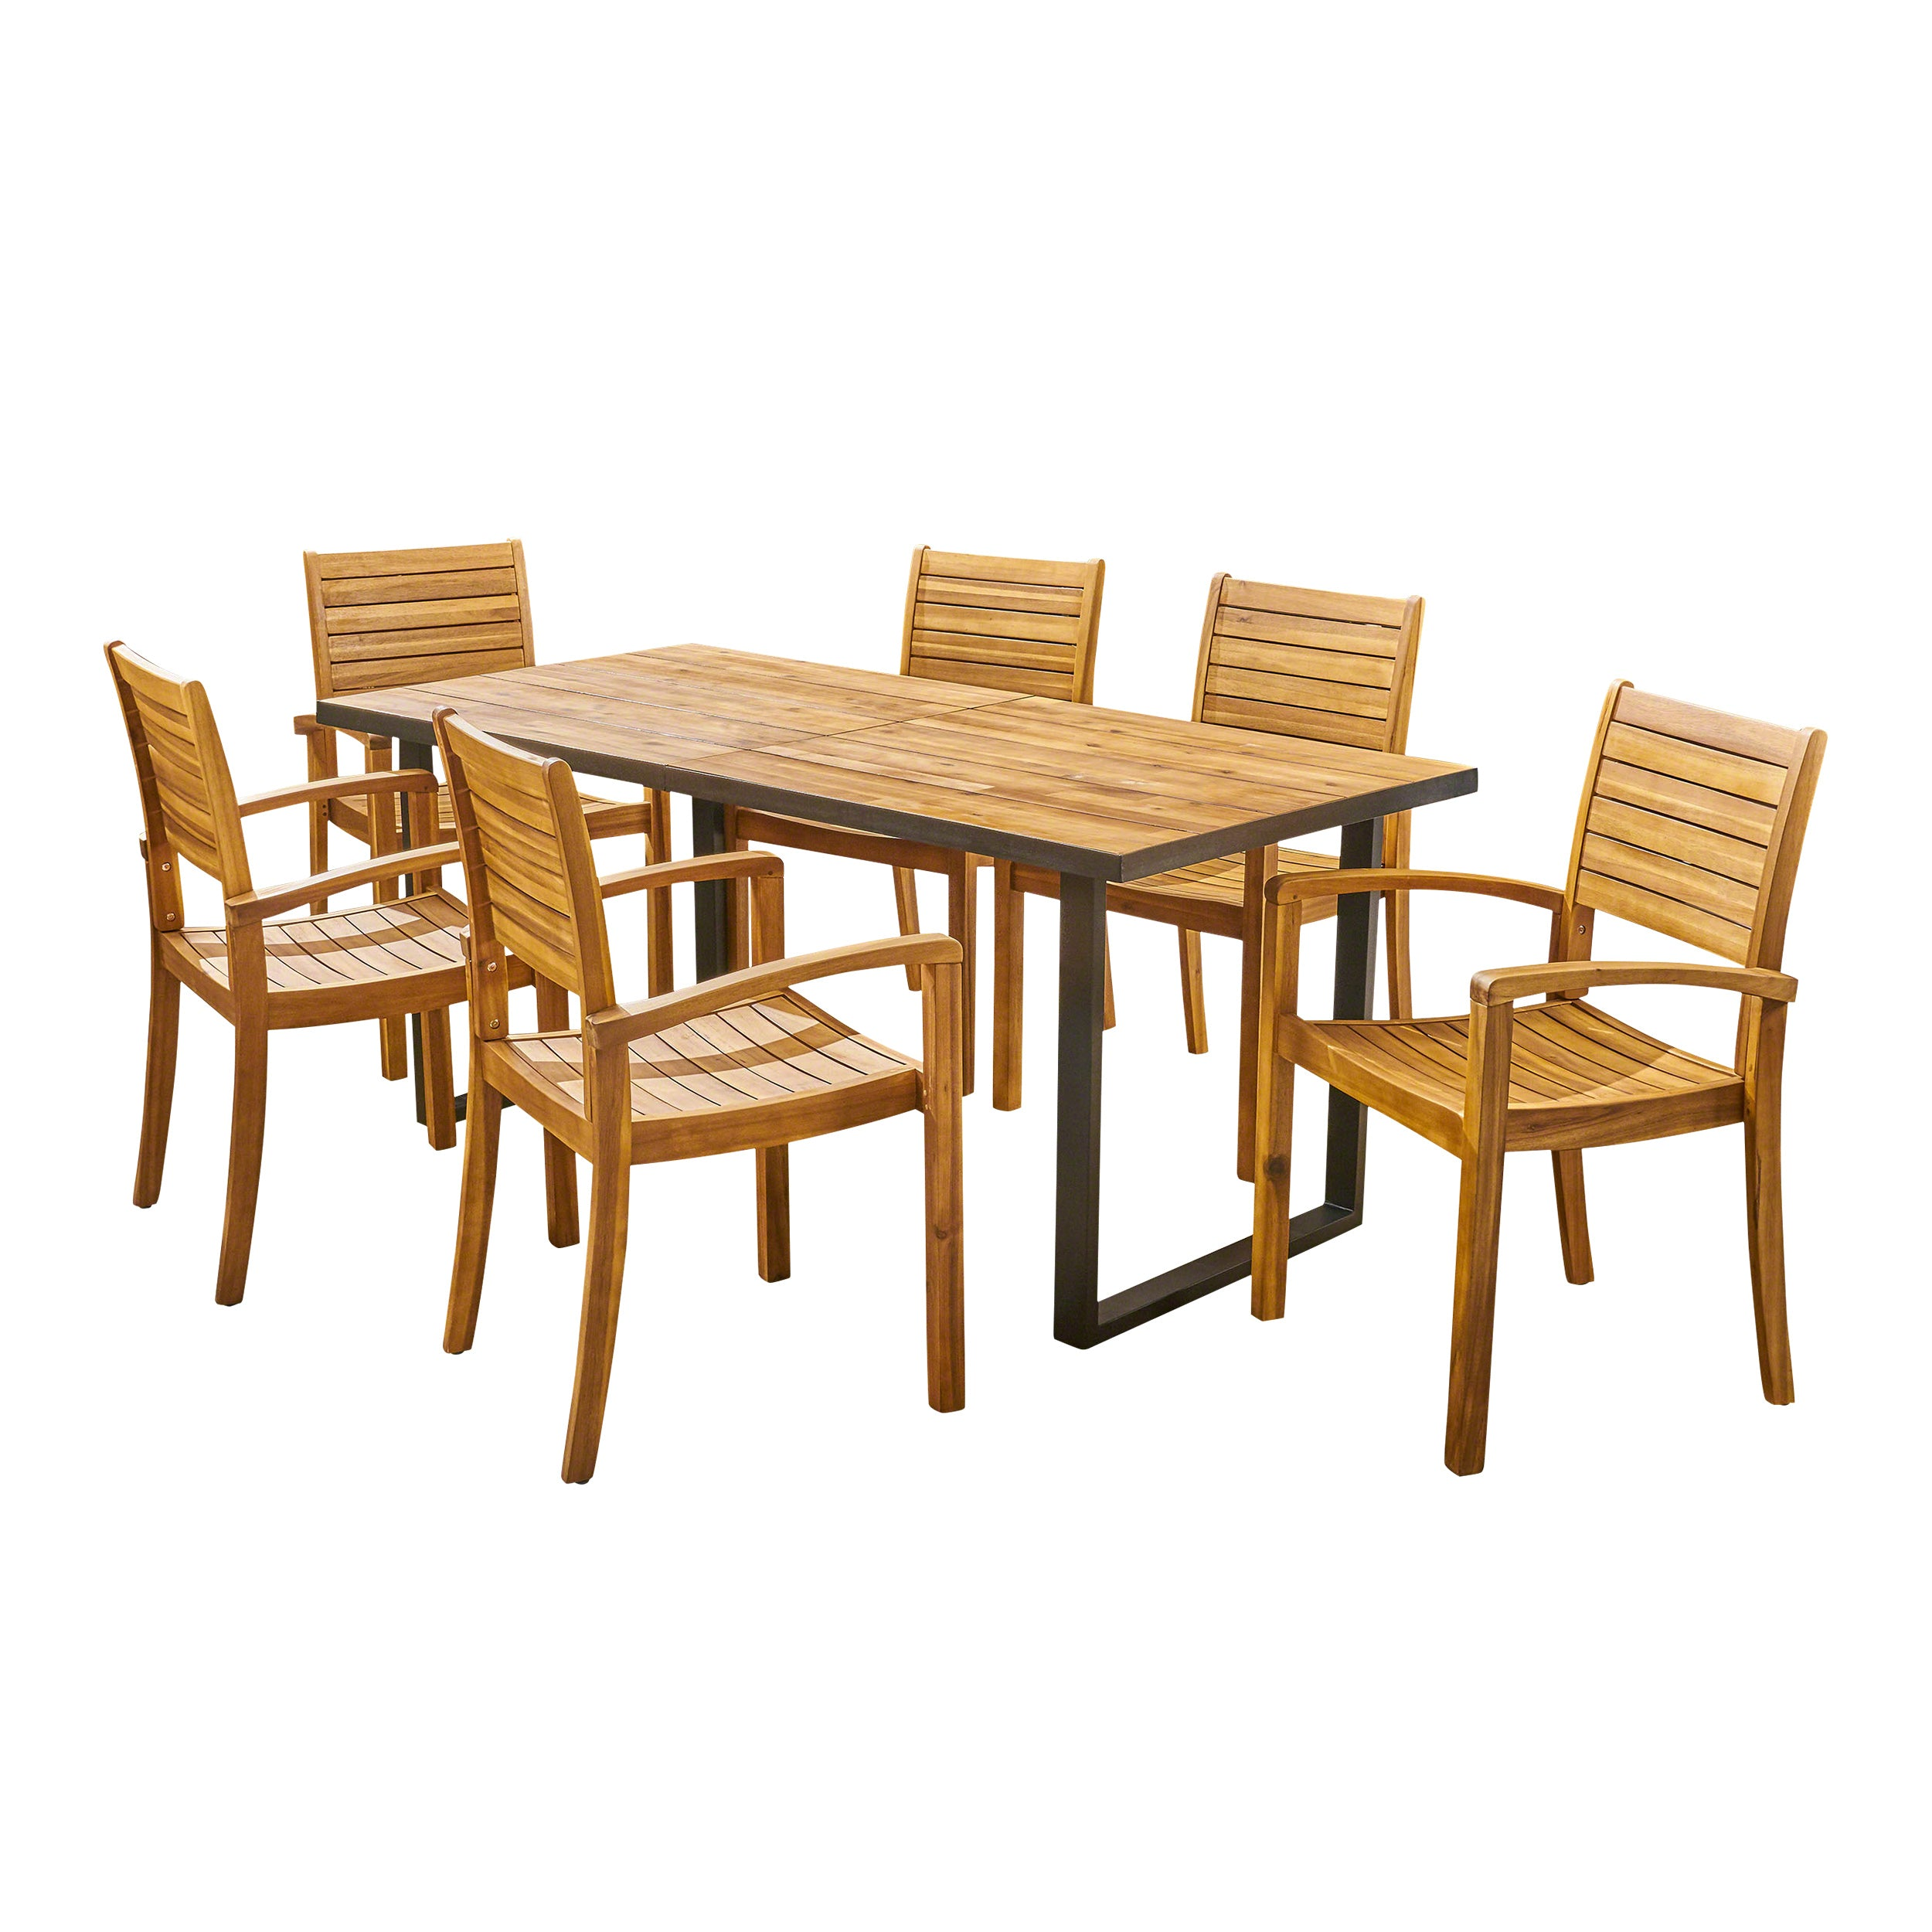 Alderson Outdoor 6 Seater Rectangular Acacia Wood Dining Set Teak and Black Default Title